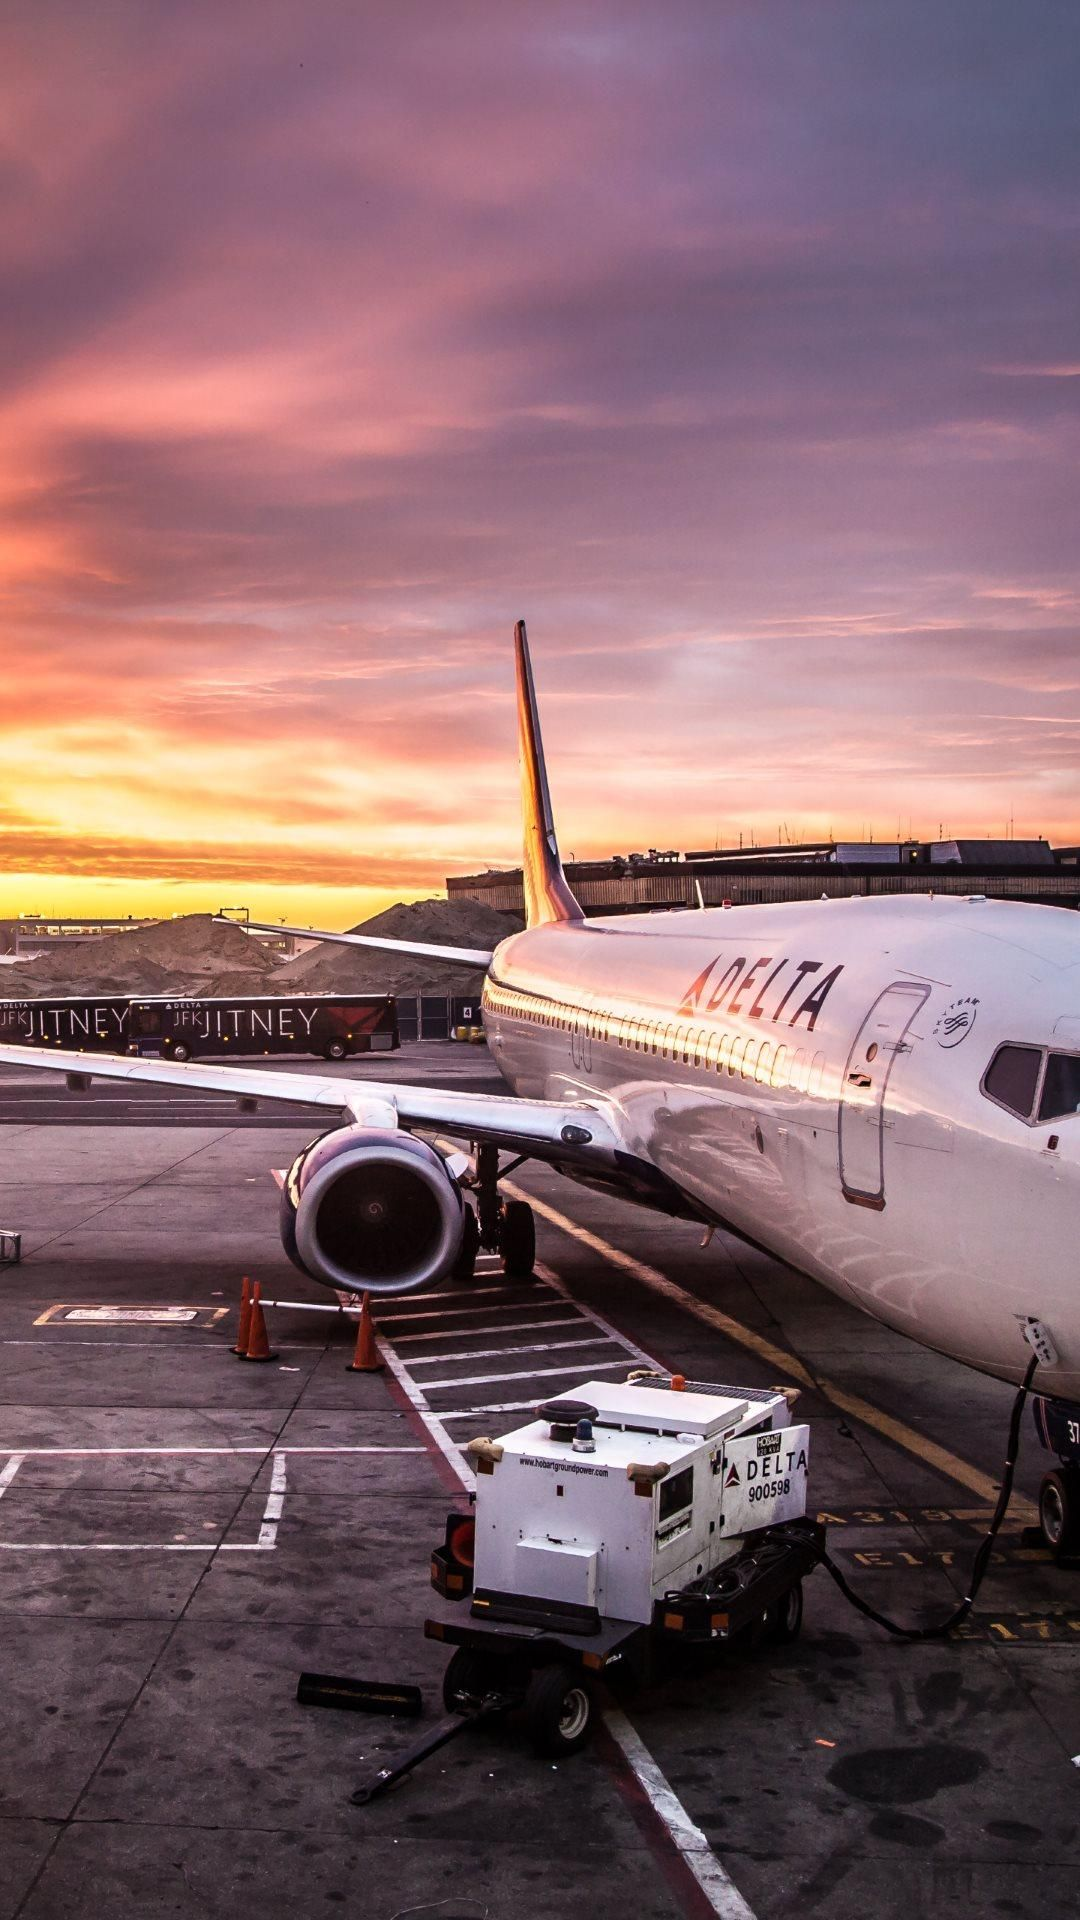 delta airline on jfk airport 1080x1920 need iphone 6s